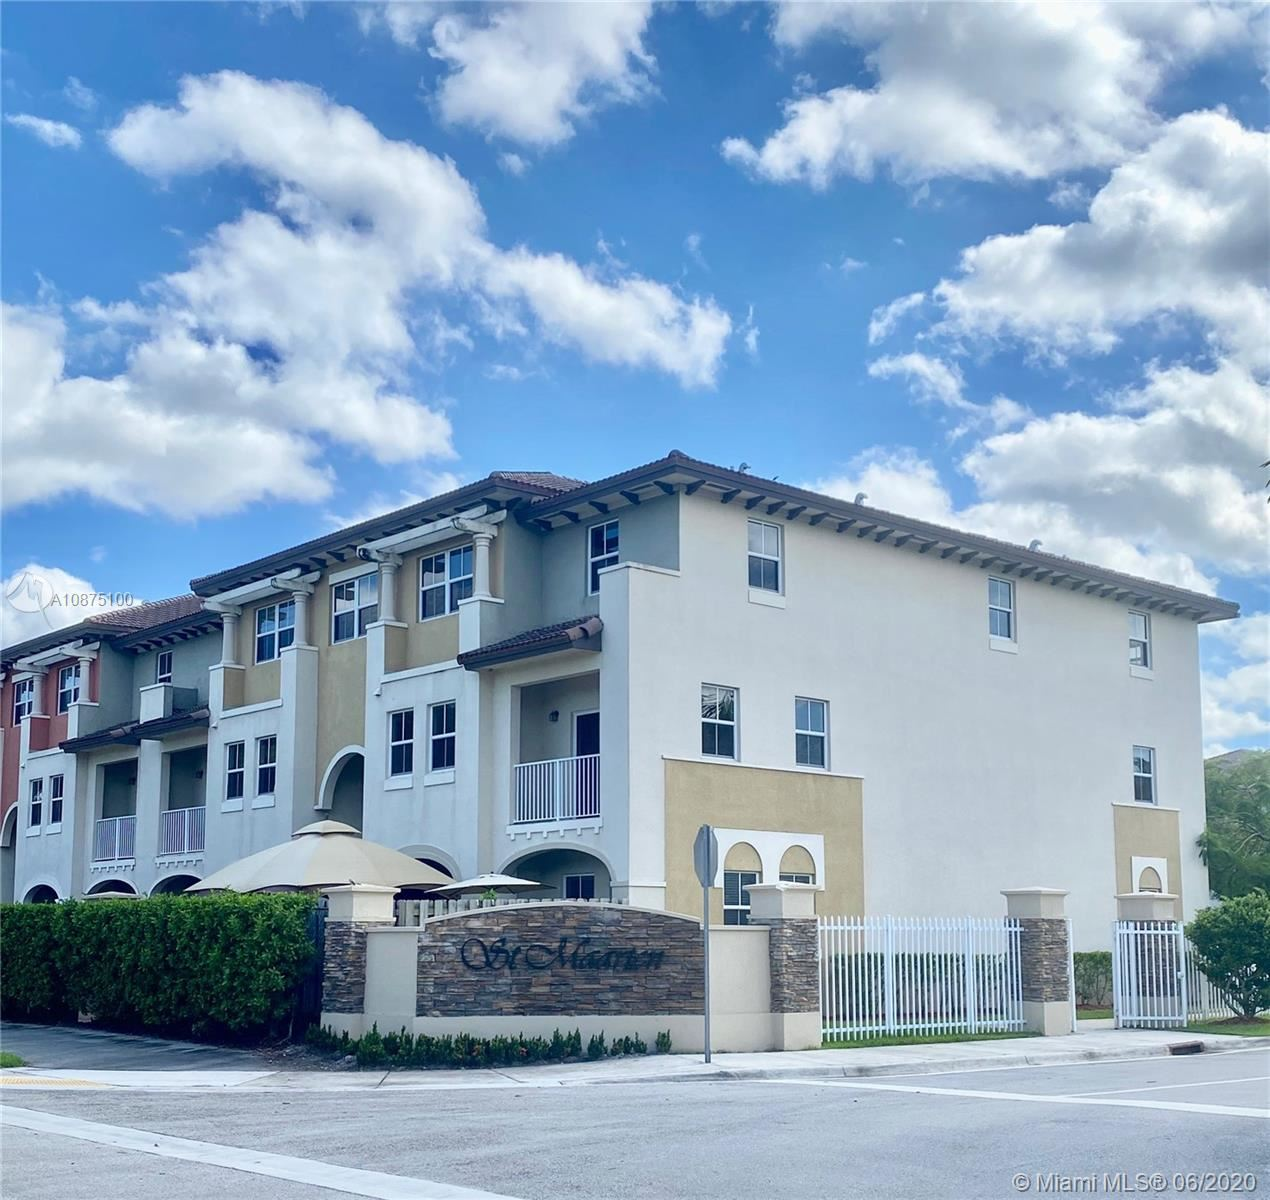 8760 NW 97th Ave #213, Doral, FL 33178 - #: A10875100